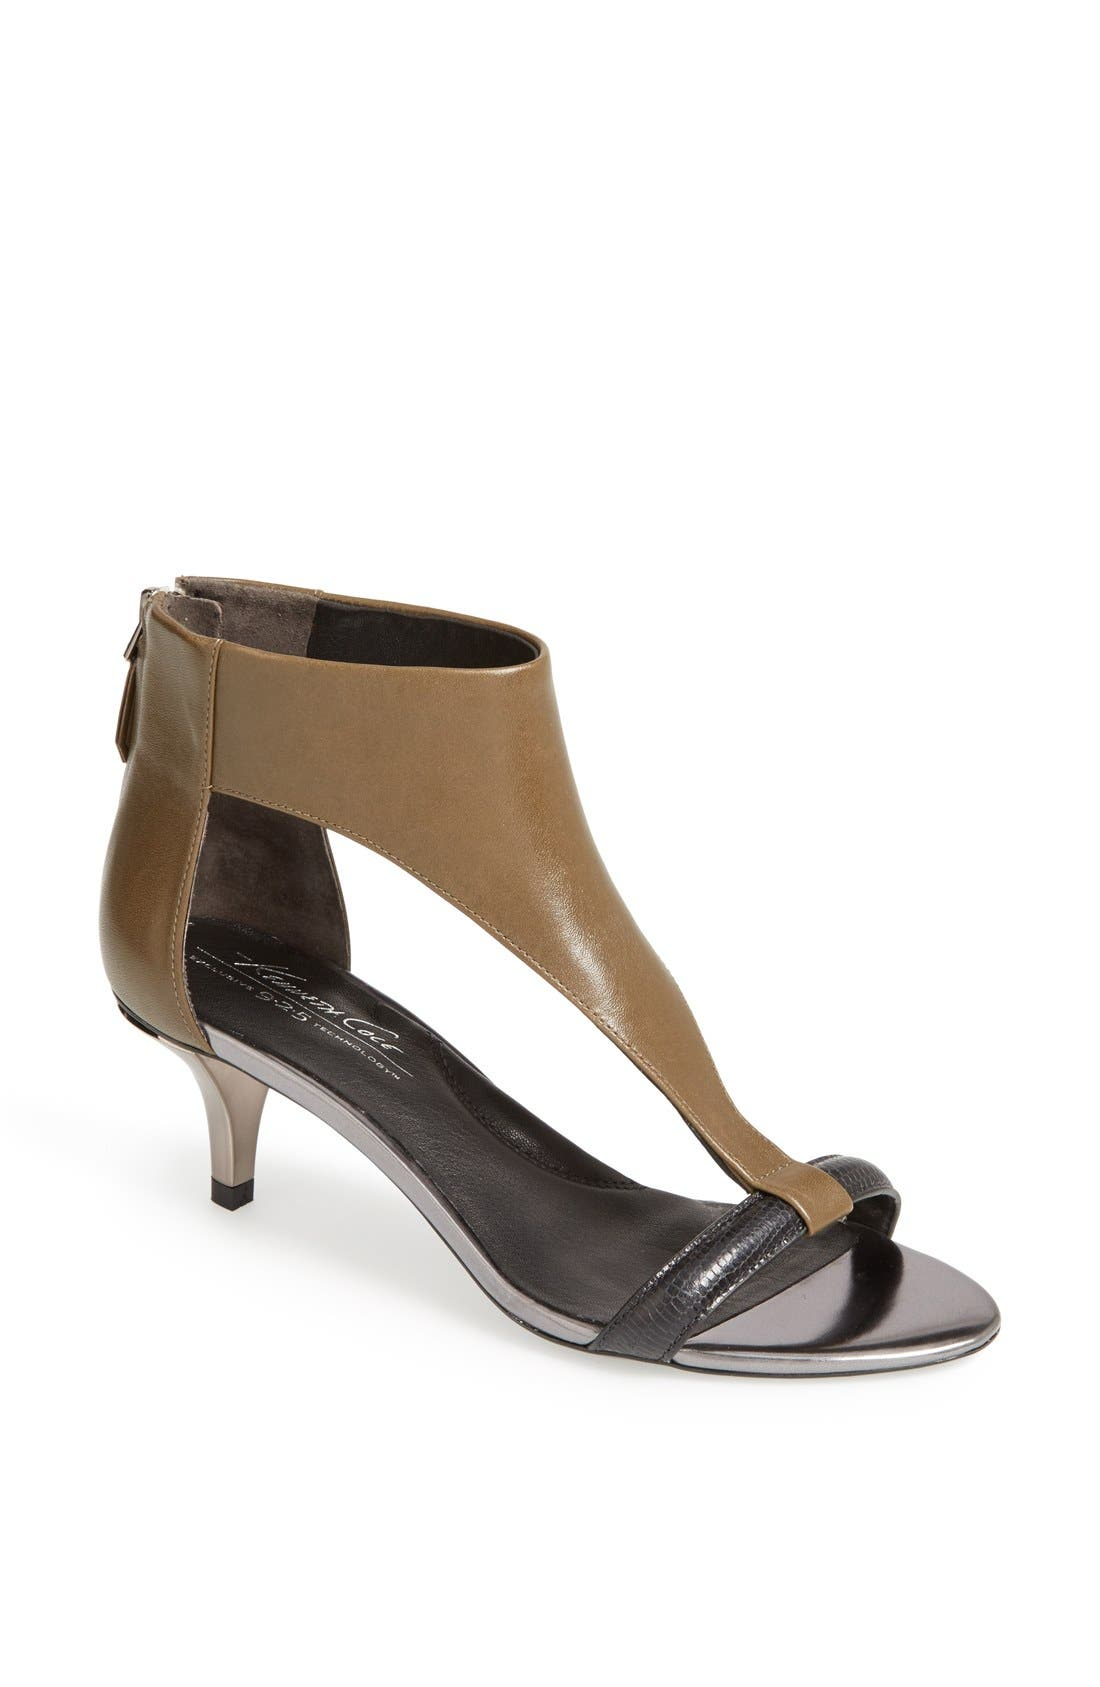 Main Image - Kenneth Cole New York 'Havemeyer' Leather Sandal